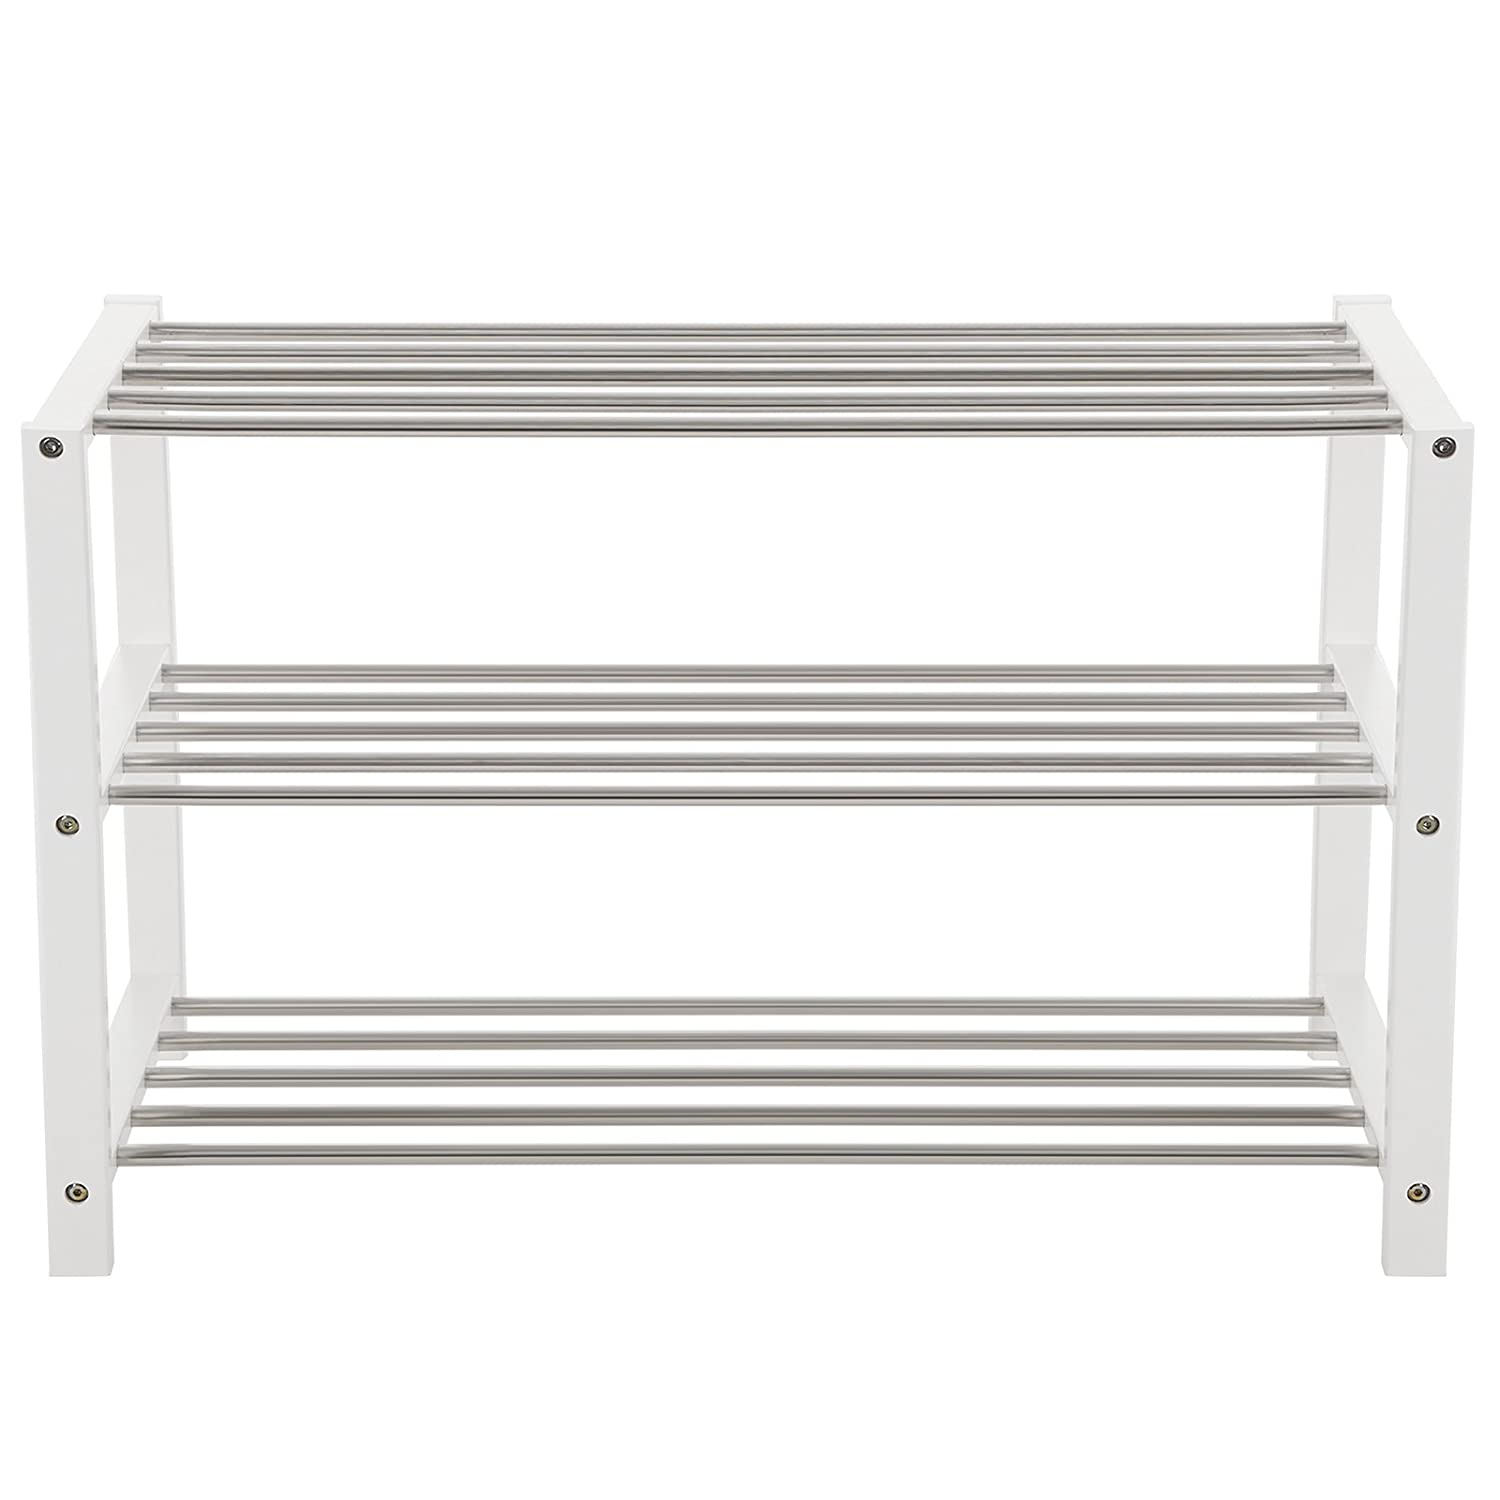 SONGMICS Shoe Rack Shoe Storage Shelf Organiser 3-Tier Bamboo Side Frame White 80 x 30 x 50 cm LBS03W